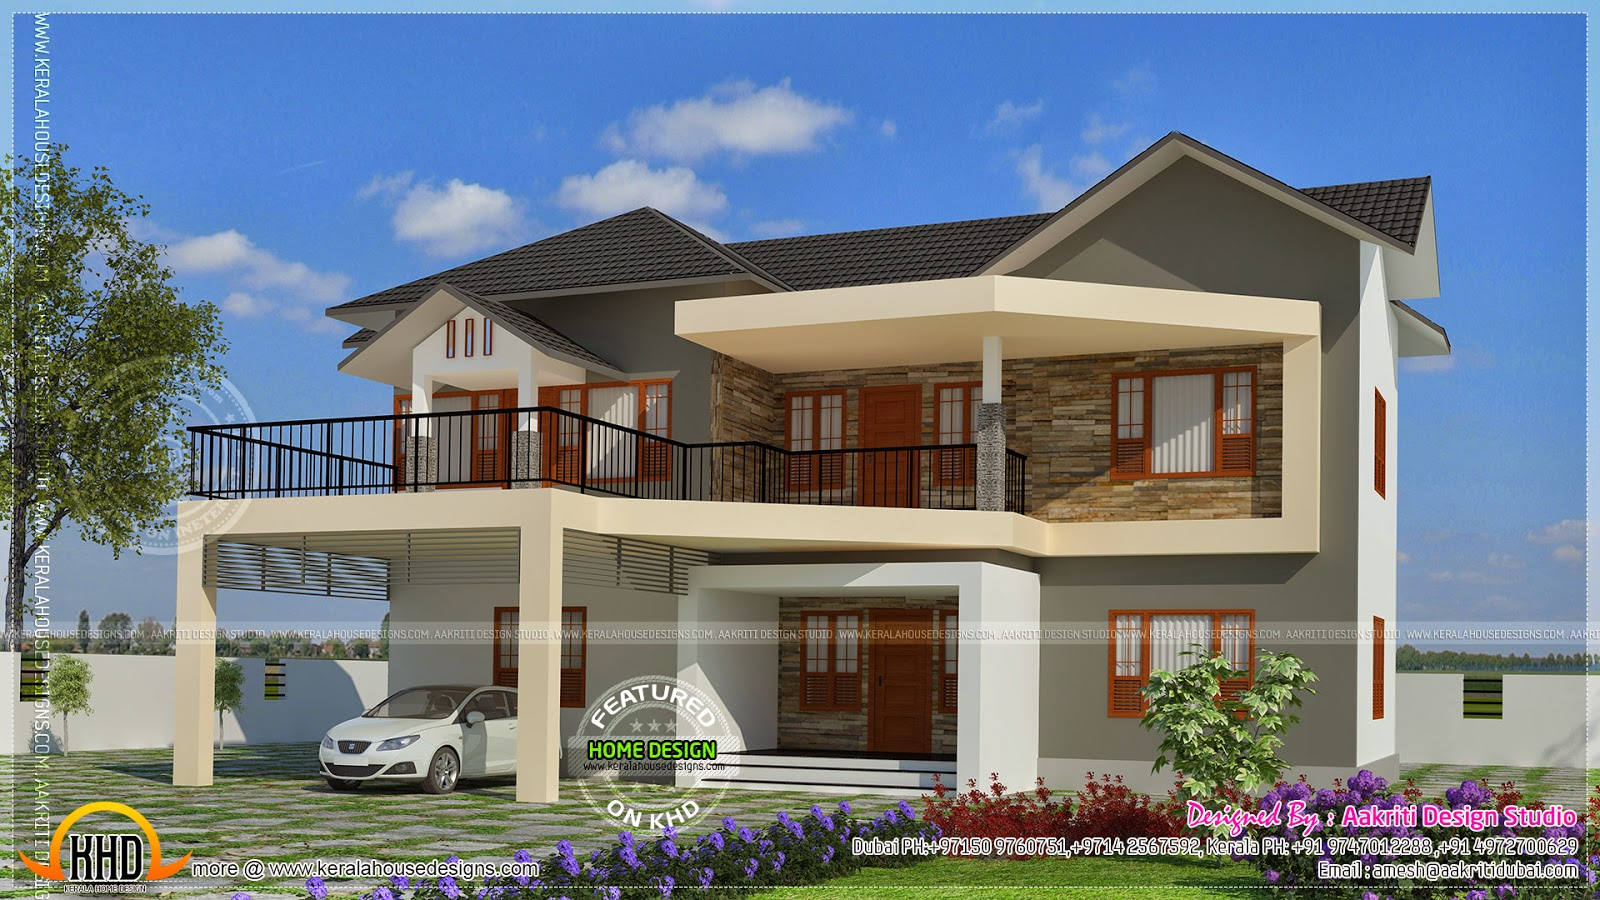 Elegant villa exterior kerala home design and floor plans for Elegant house plans photos